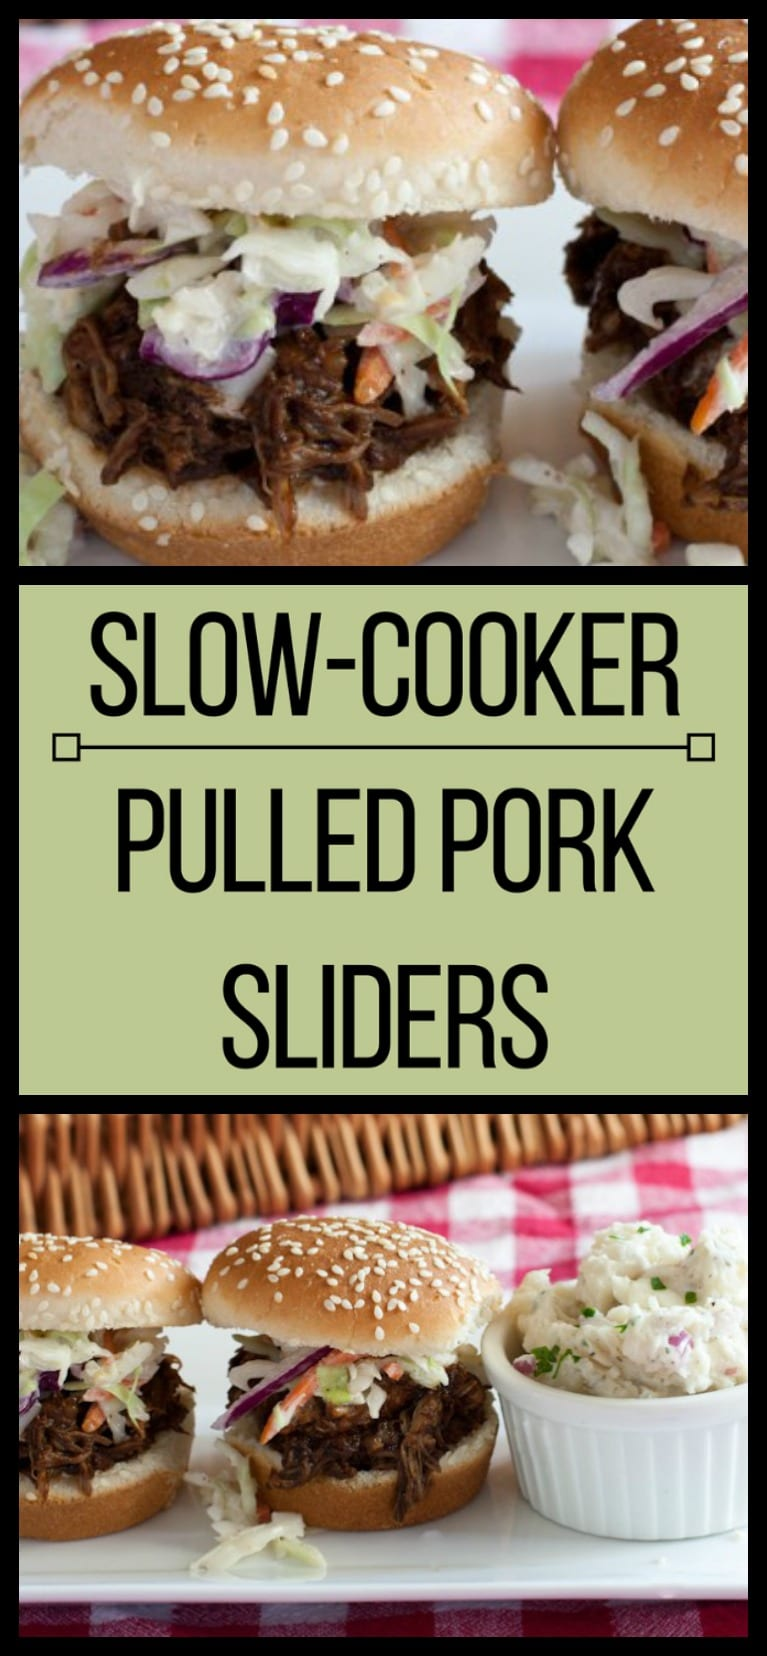 Slow-cooker BBQ Pork Sliders with Western South-Carolina Style Barbecue Sauce